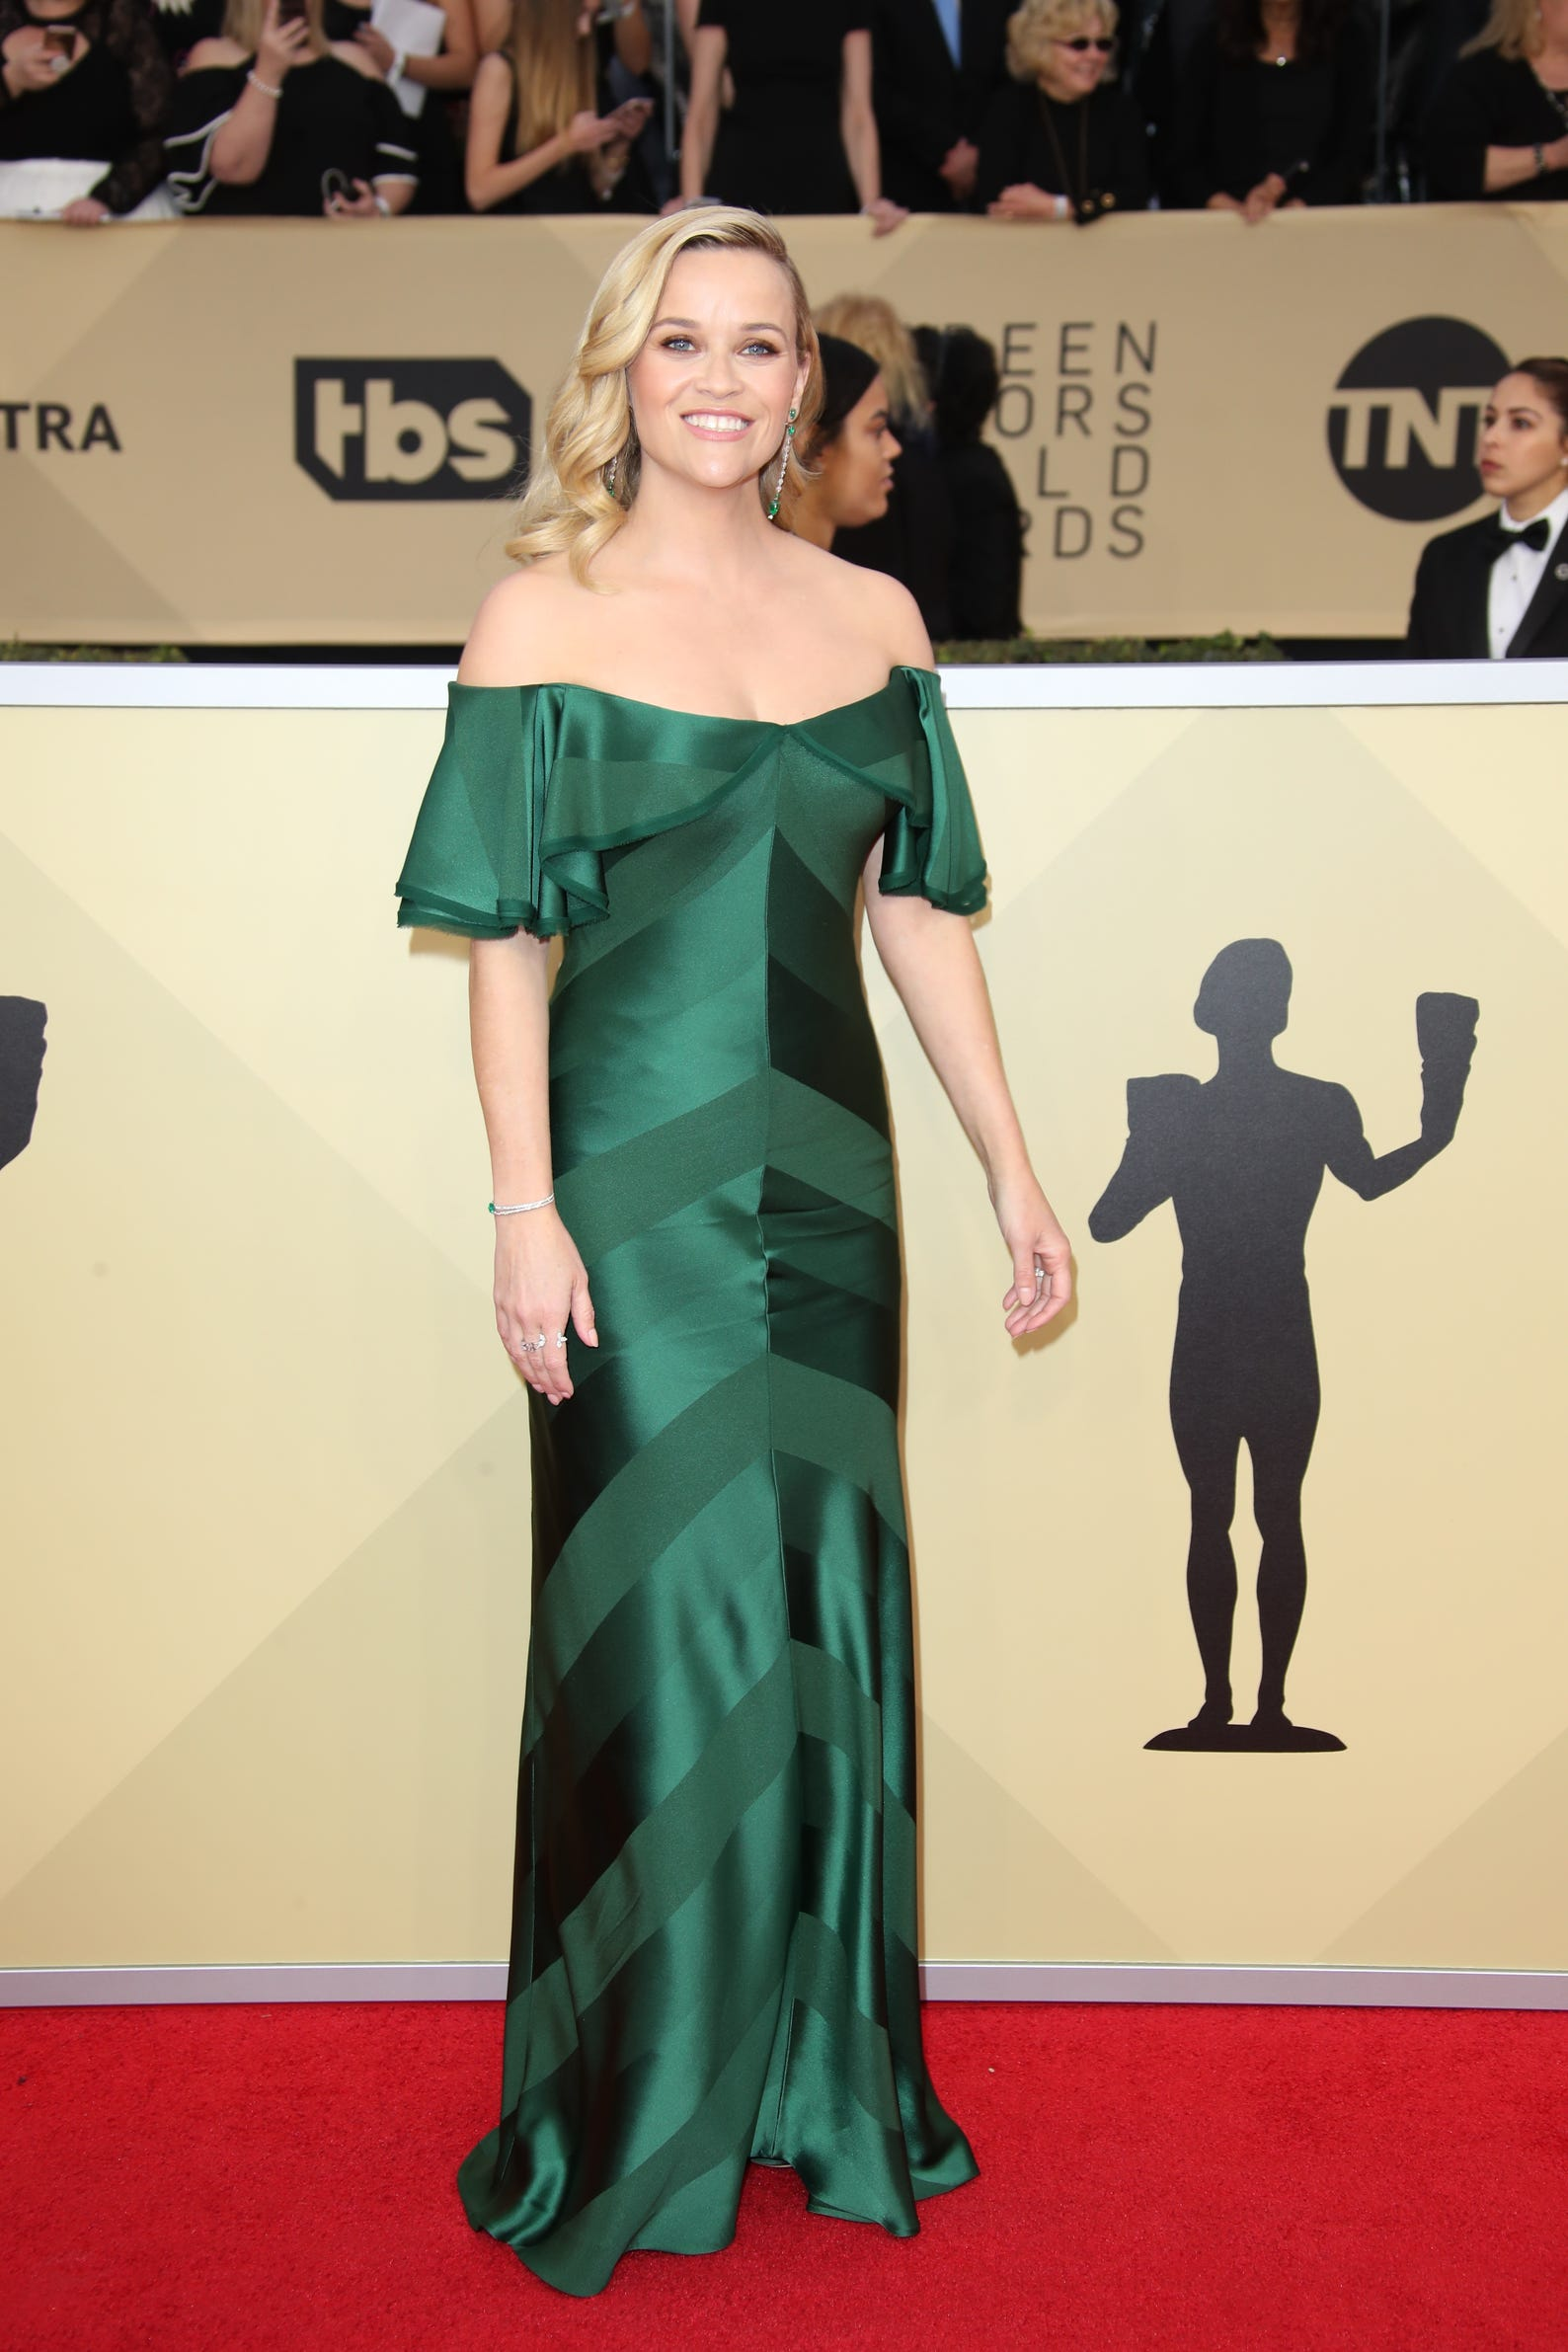 431e01aa94 Reese Witherspoon looked chic in an off-the-shoulder emerald gown by Zac  Posen